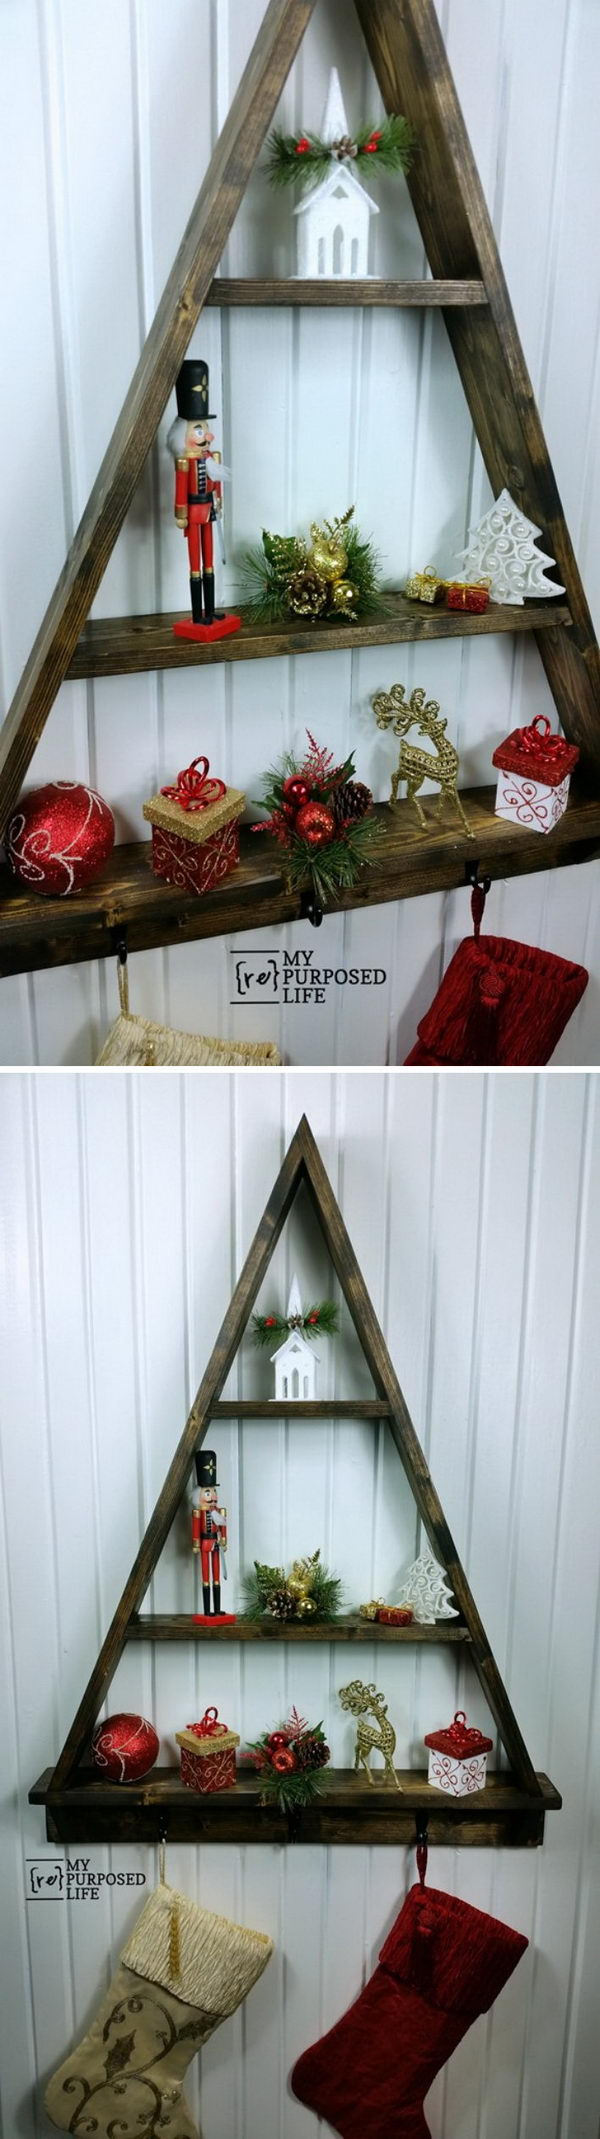 DIY Christmas Tree Shelf Stocking Holder.